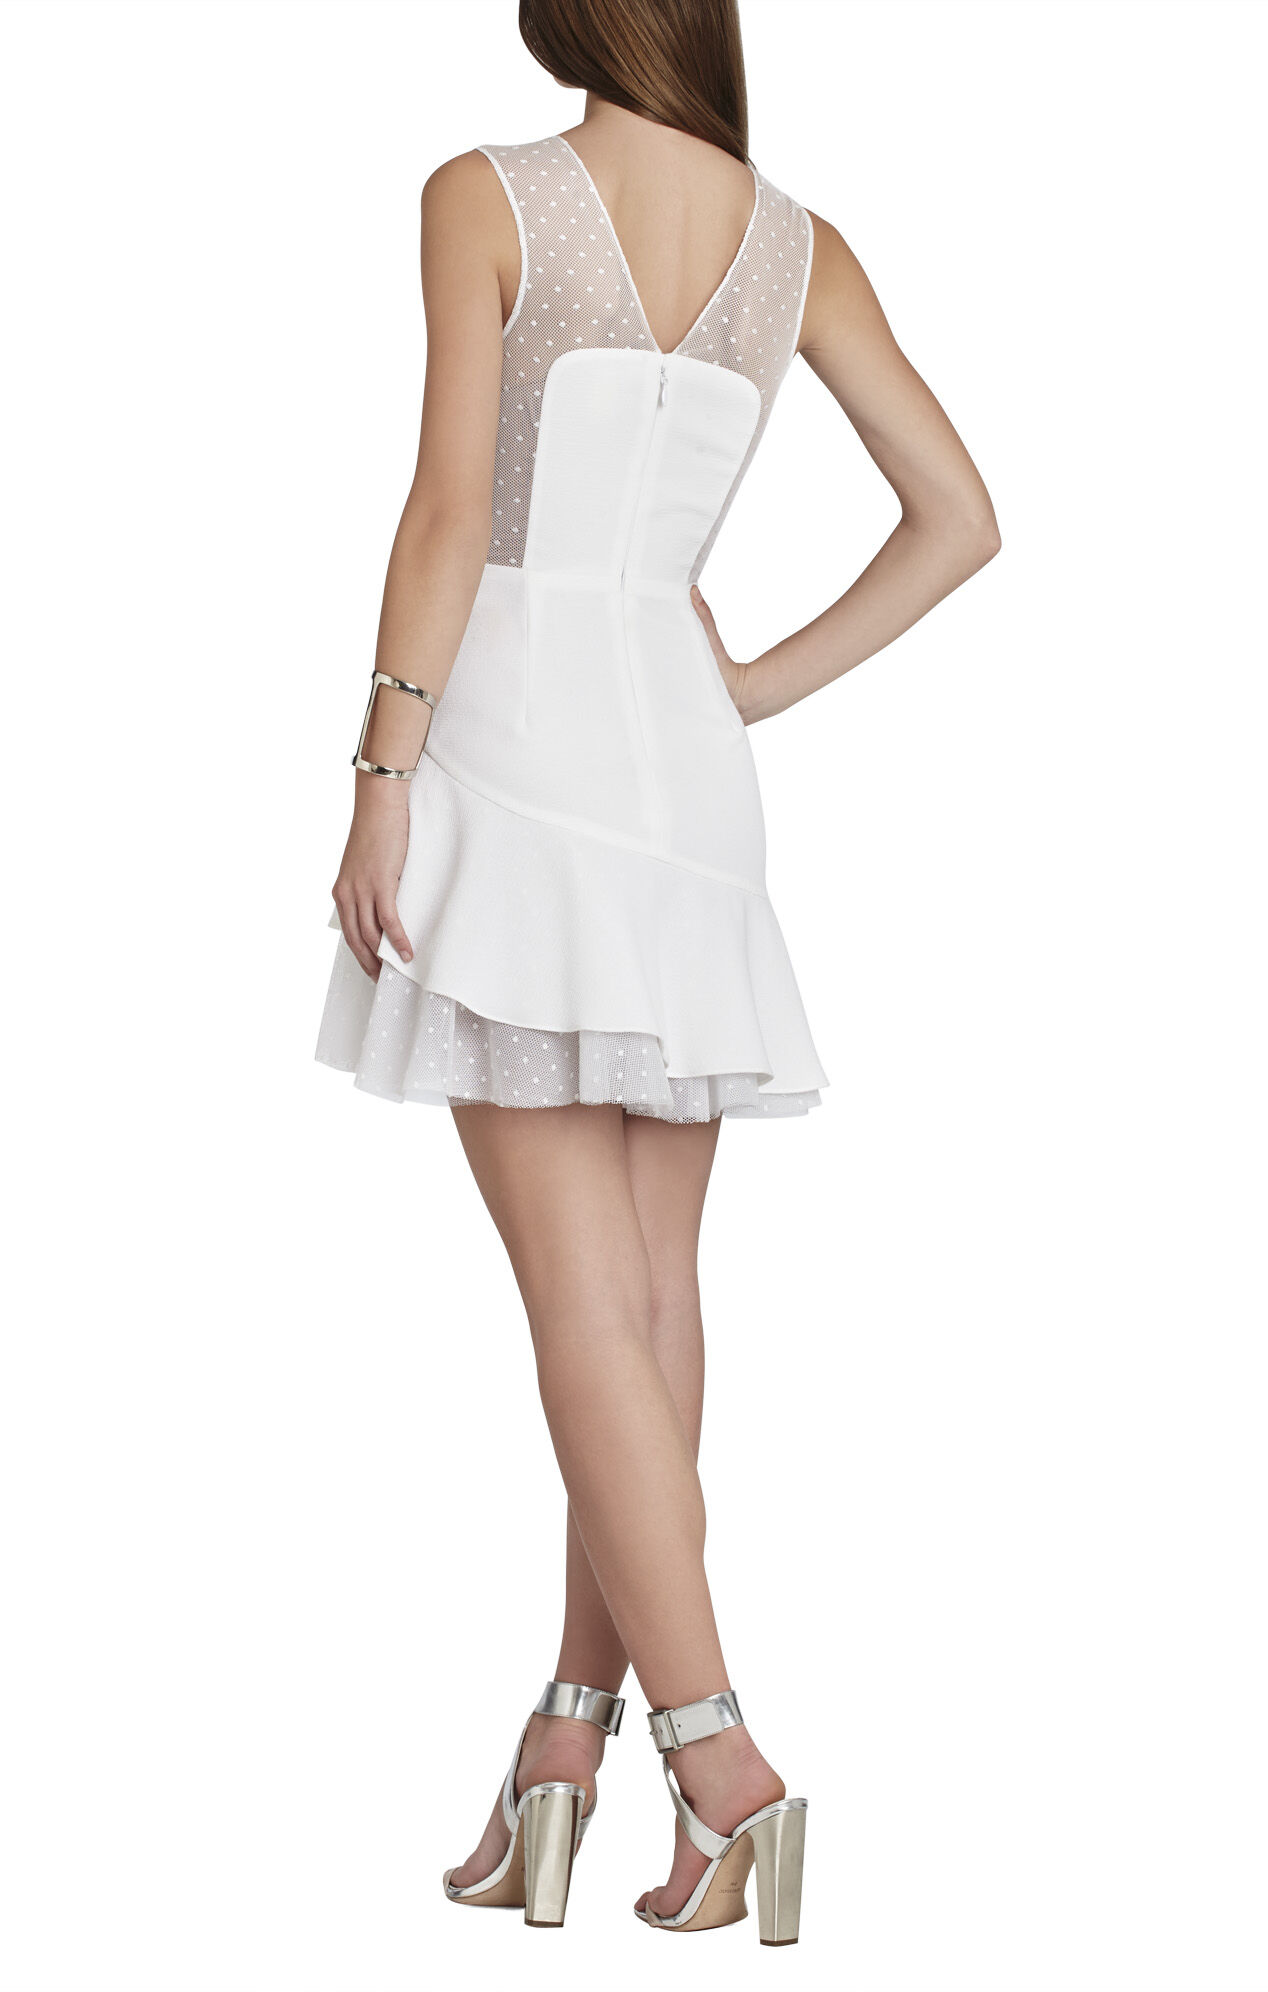 Adrianna Asymmetrical Ruffle-Skirt Dress